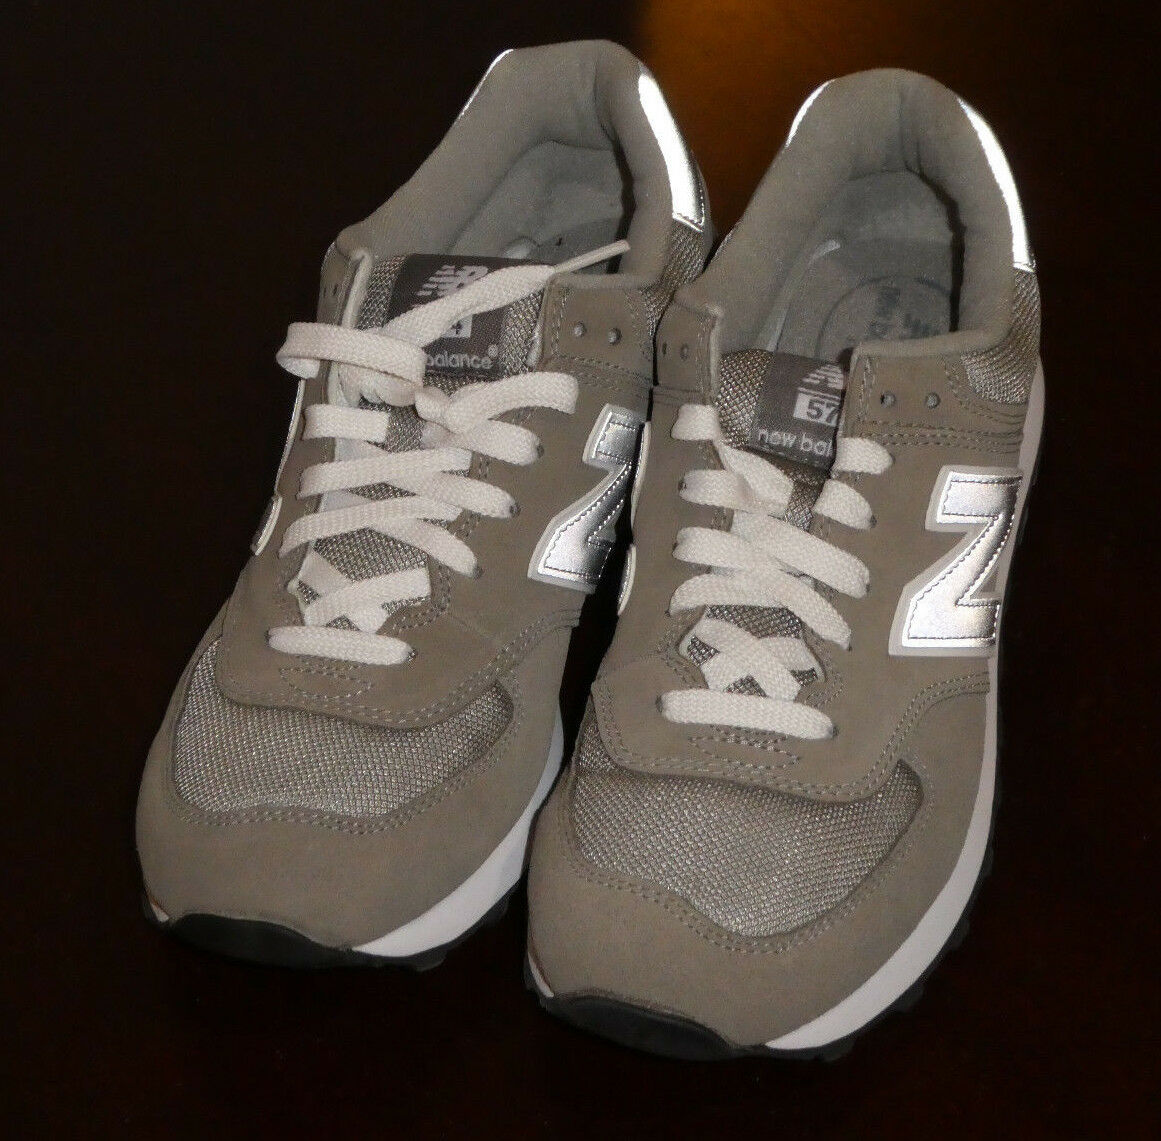 New Balance 574 shoes mens new sneakers ML574GS grey Extra WIDE EE 2E sz 8